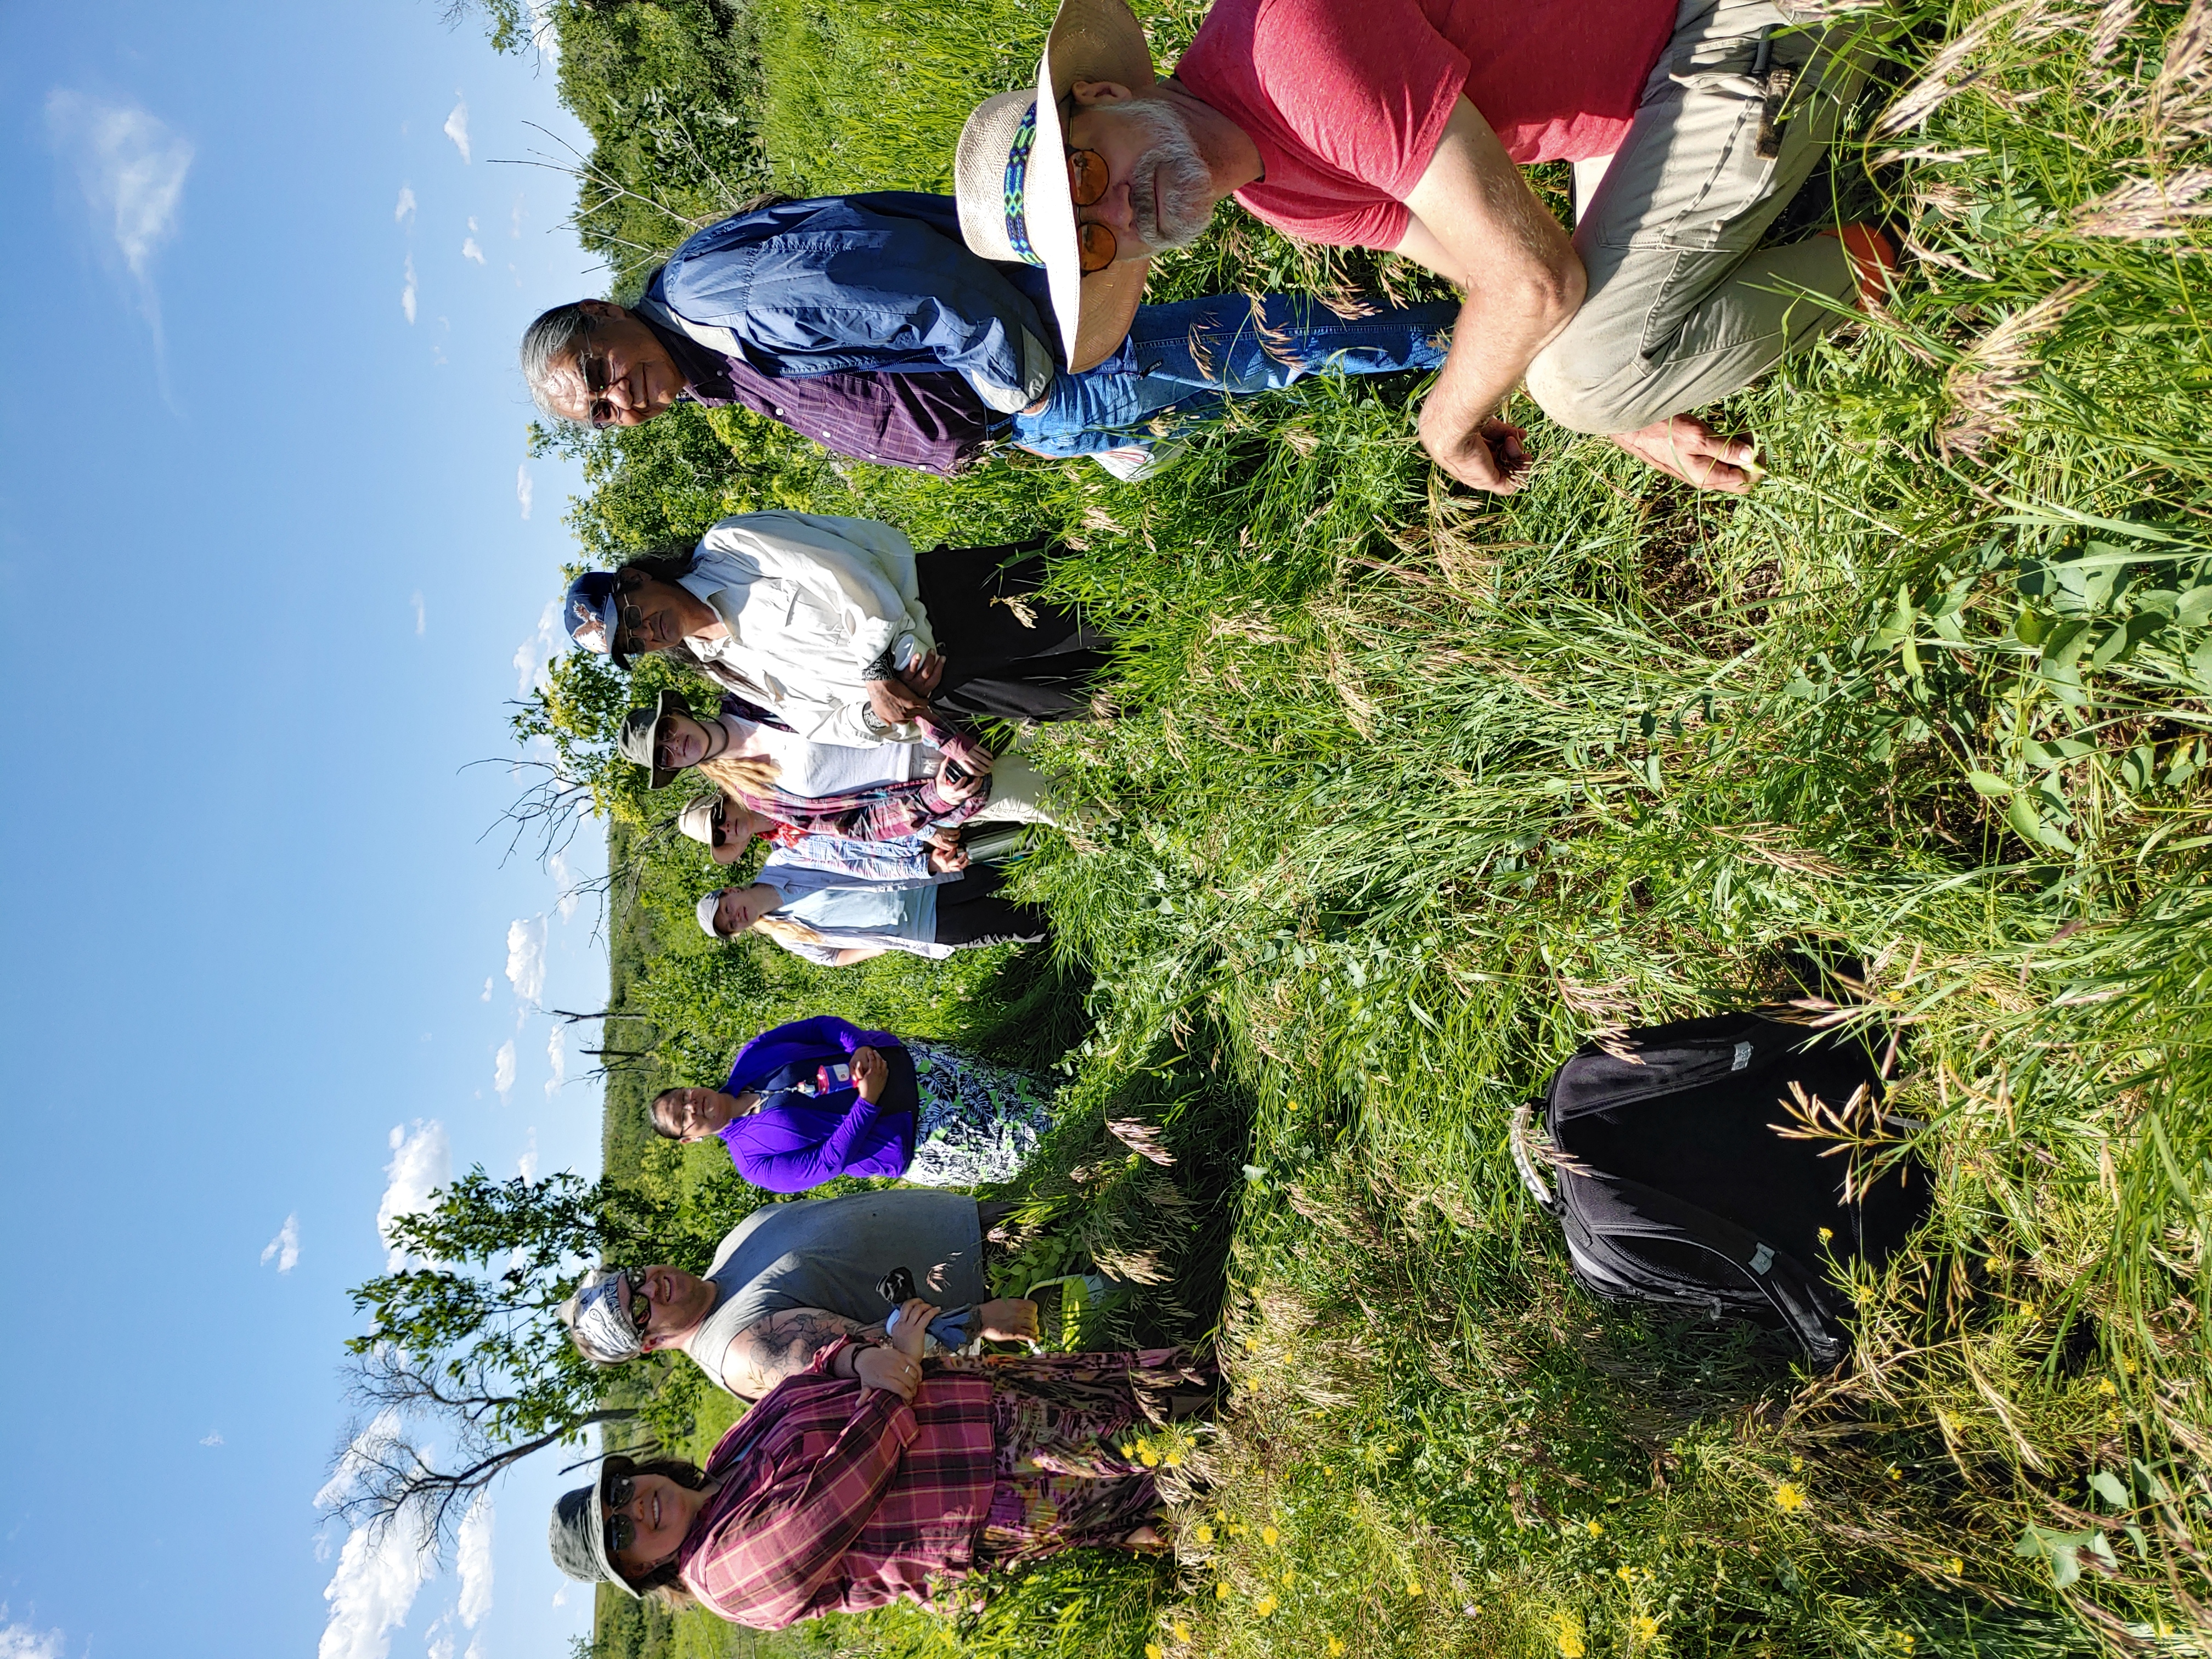 Tour of the Olson site before Indigenous blessing